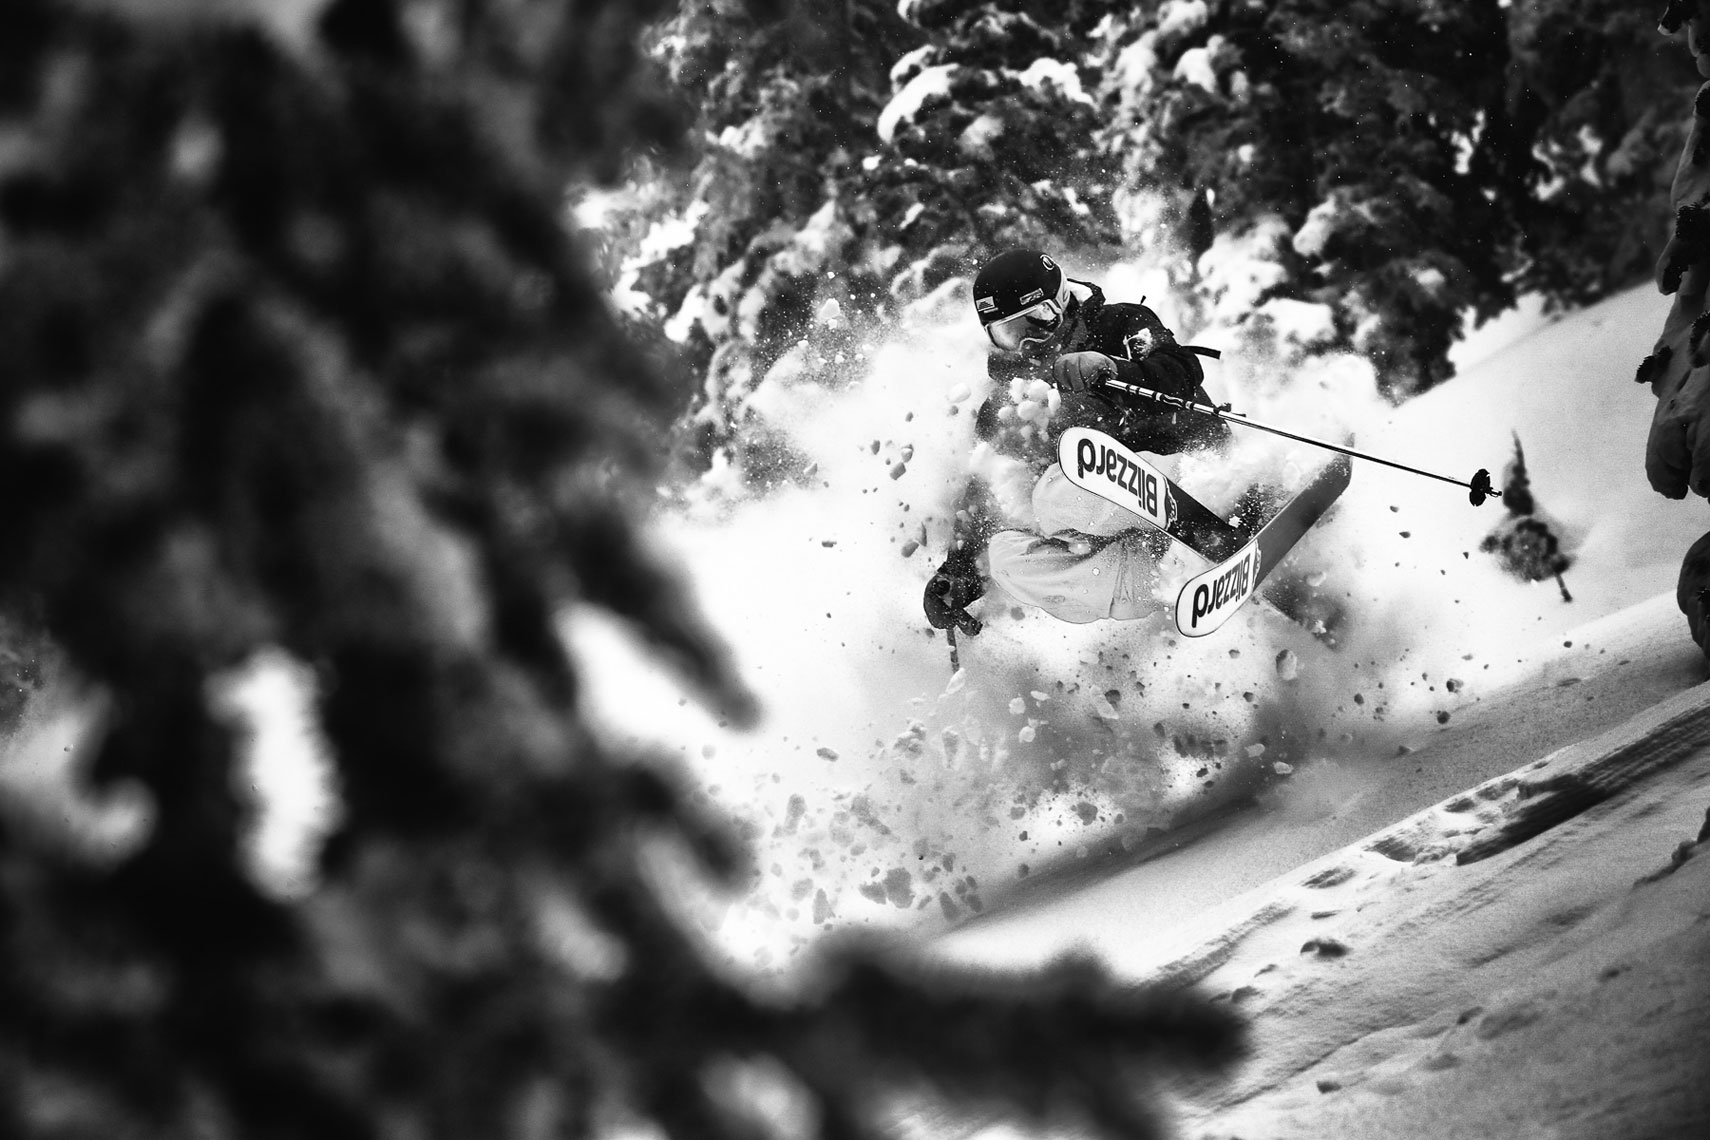 Marcus Caston Skiing Photo: Adam Barker